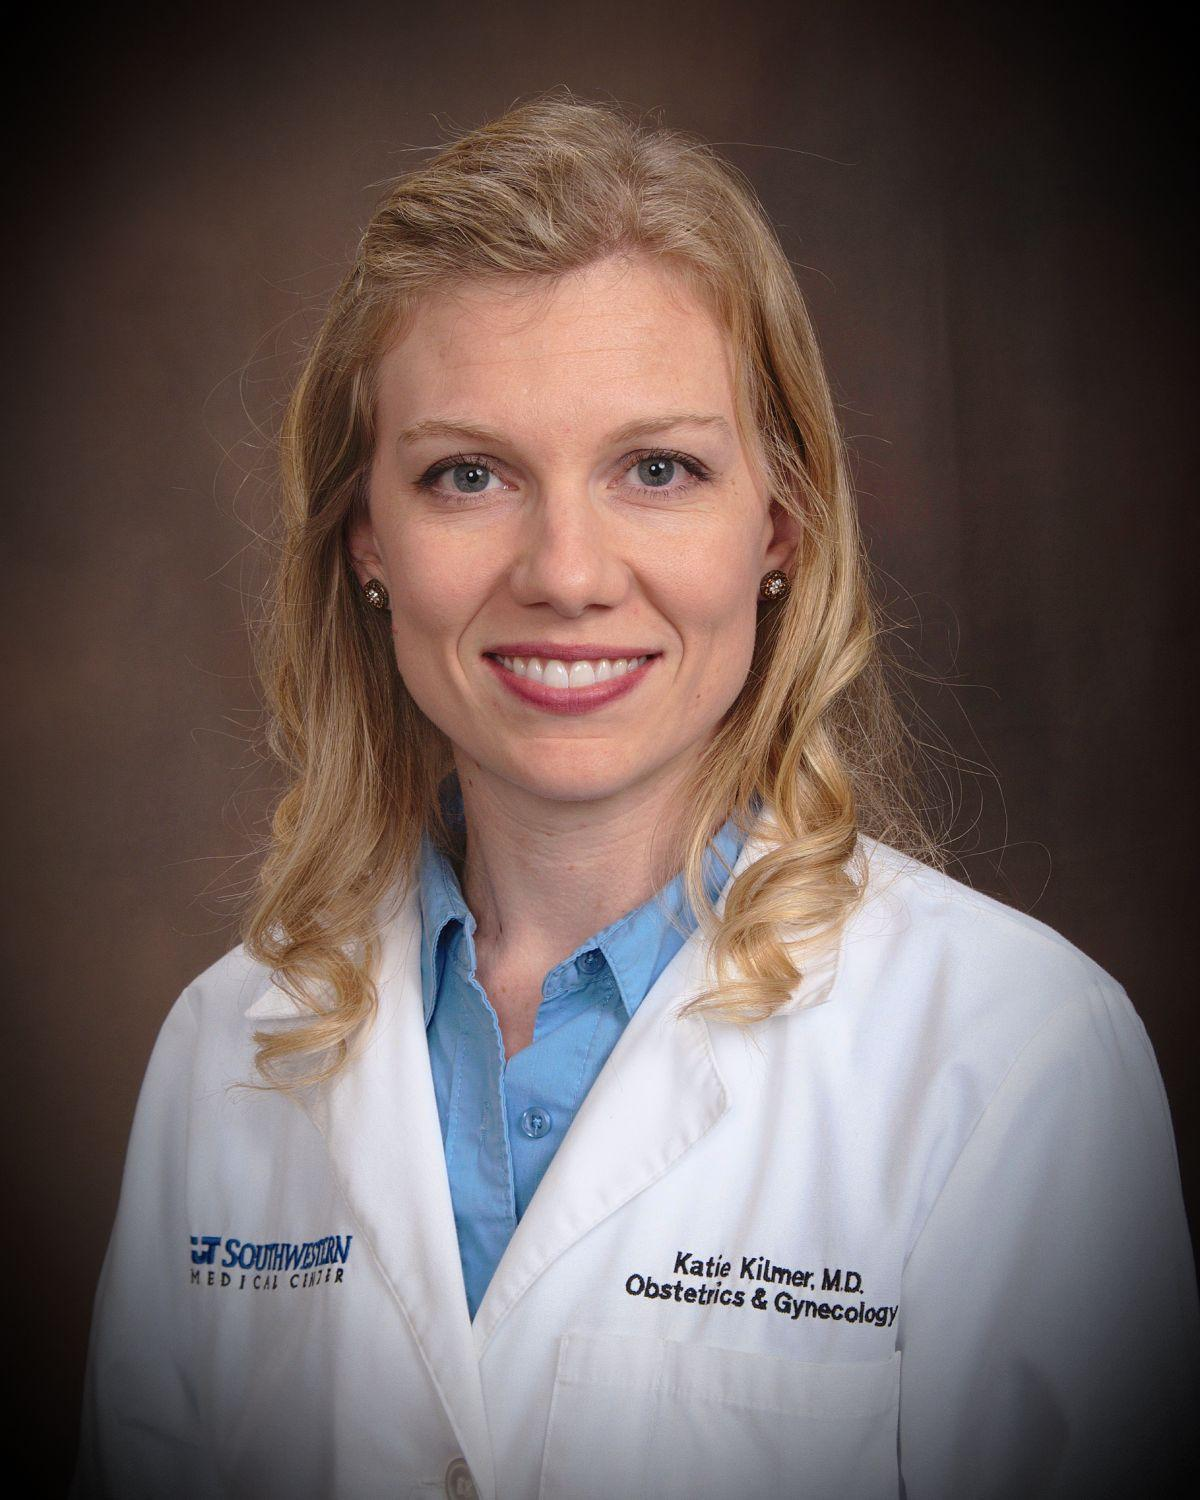 Five on three: North Texas Obstetrics and Gynecology ...